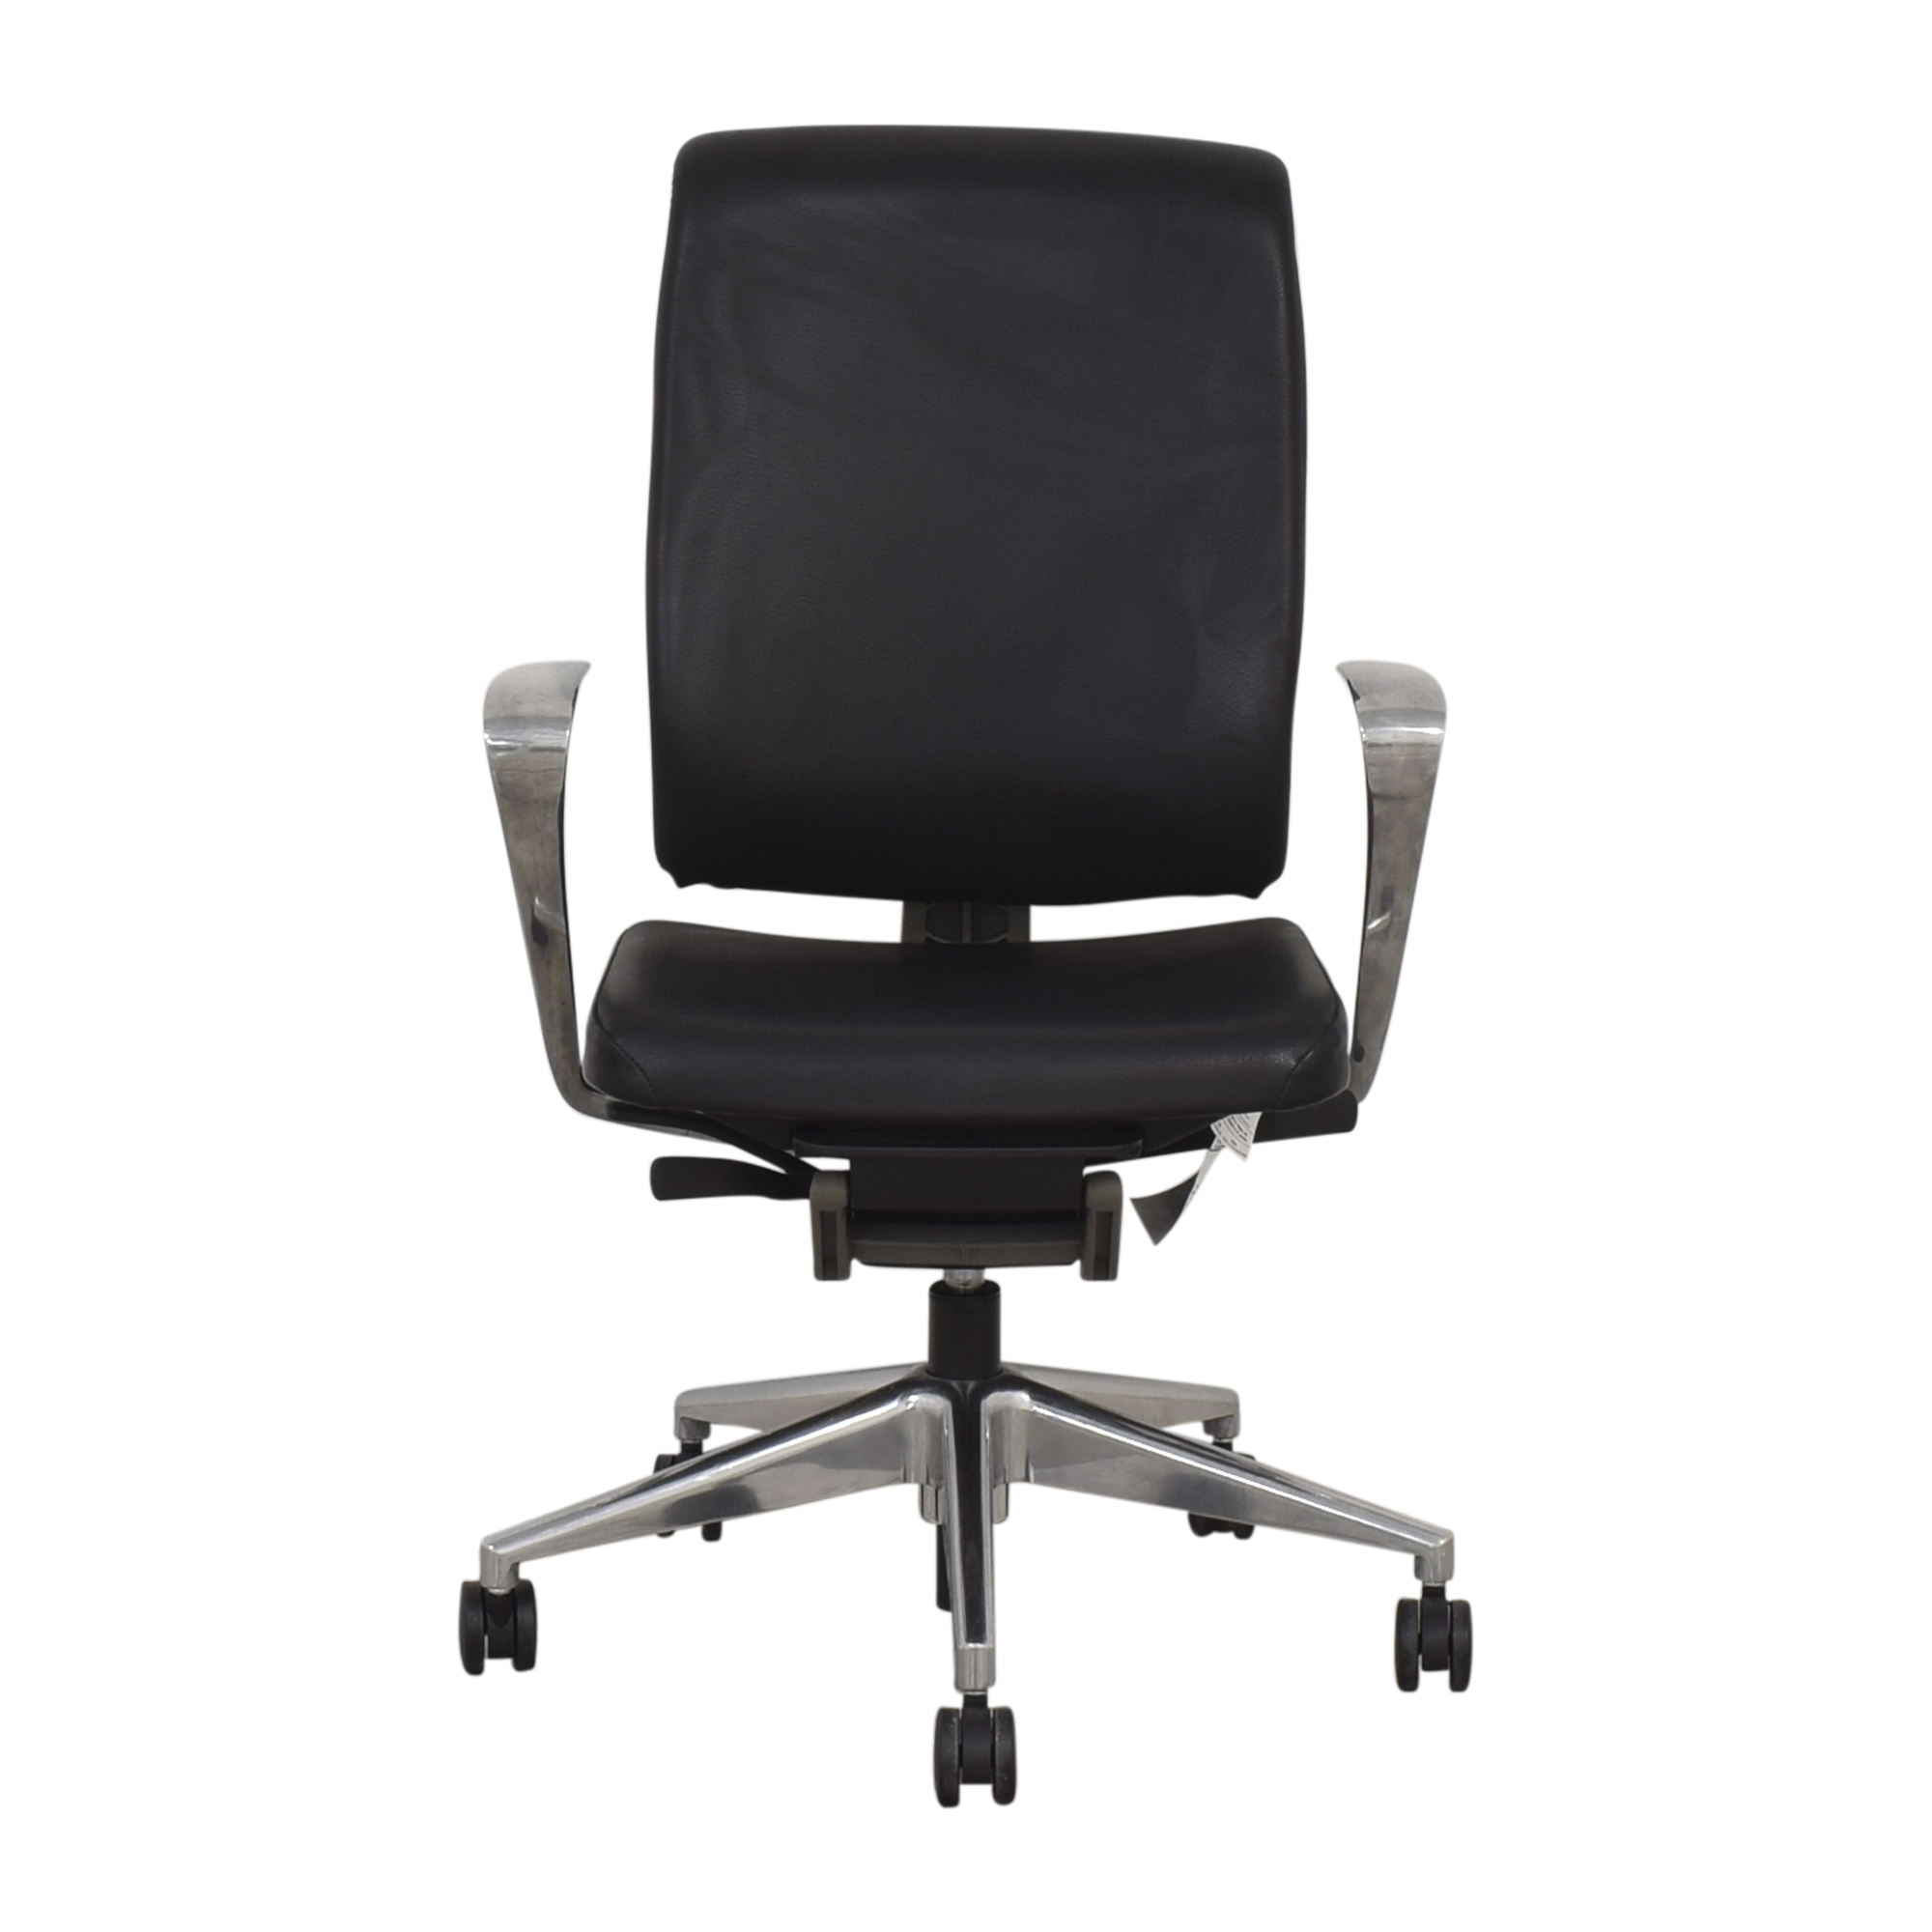 Allsteel Allsteel Task Chair nyc